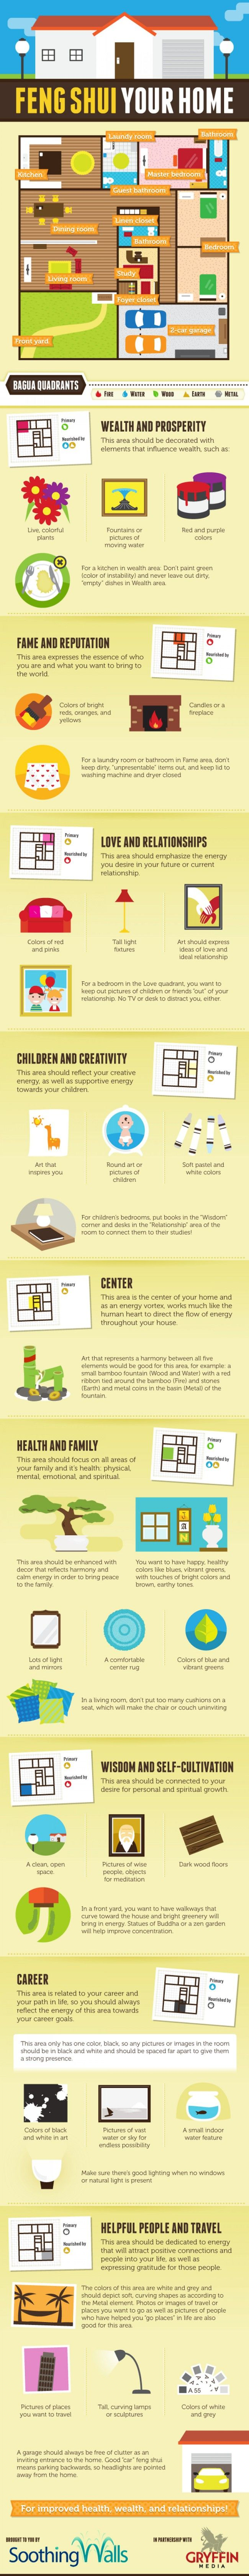 Your home for vacation amp prosperity - Feng Shui Home Infographic